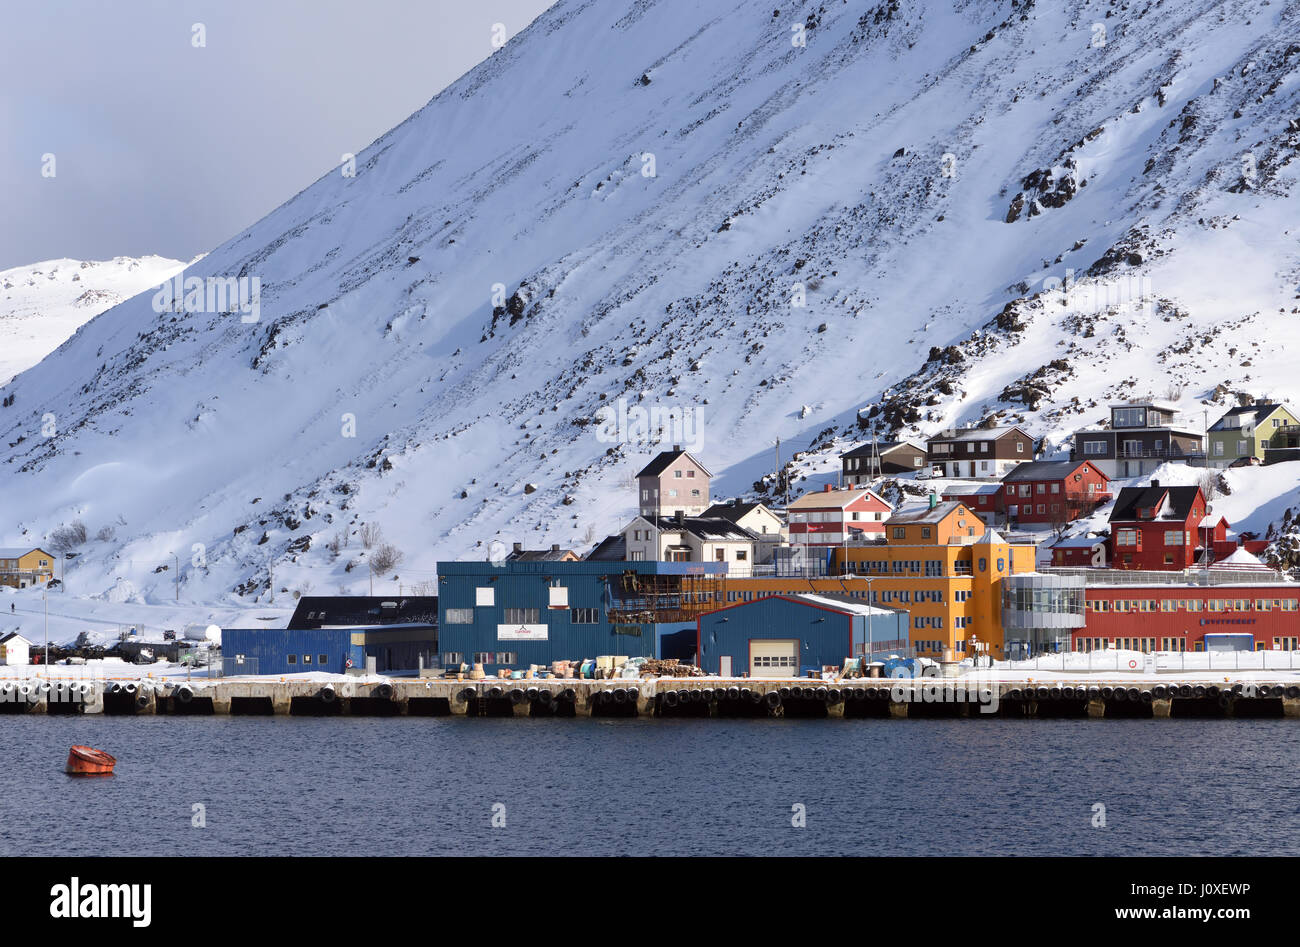 The harbour at Honningsvag, the northernmost city in Norway. Honningsvåg, Nordkapp, Finnmark, Norway. - Stock Image